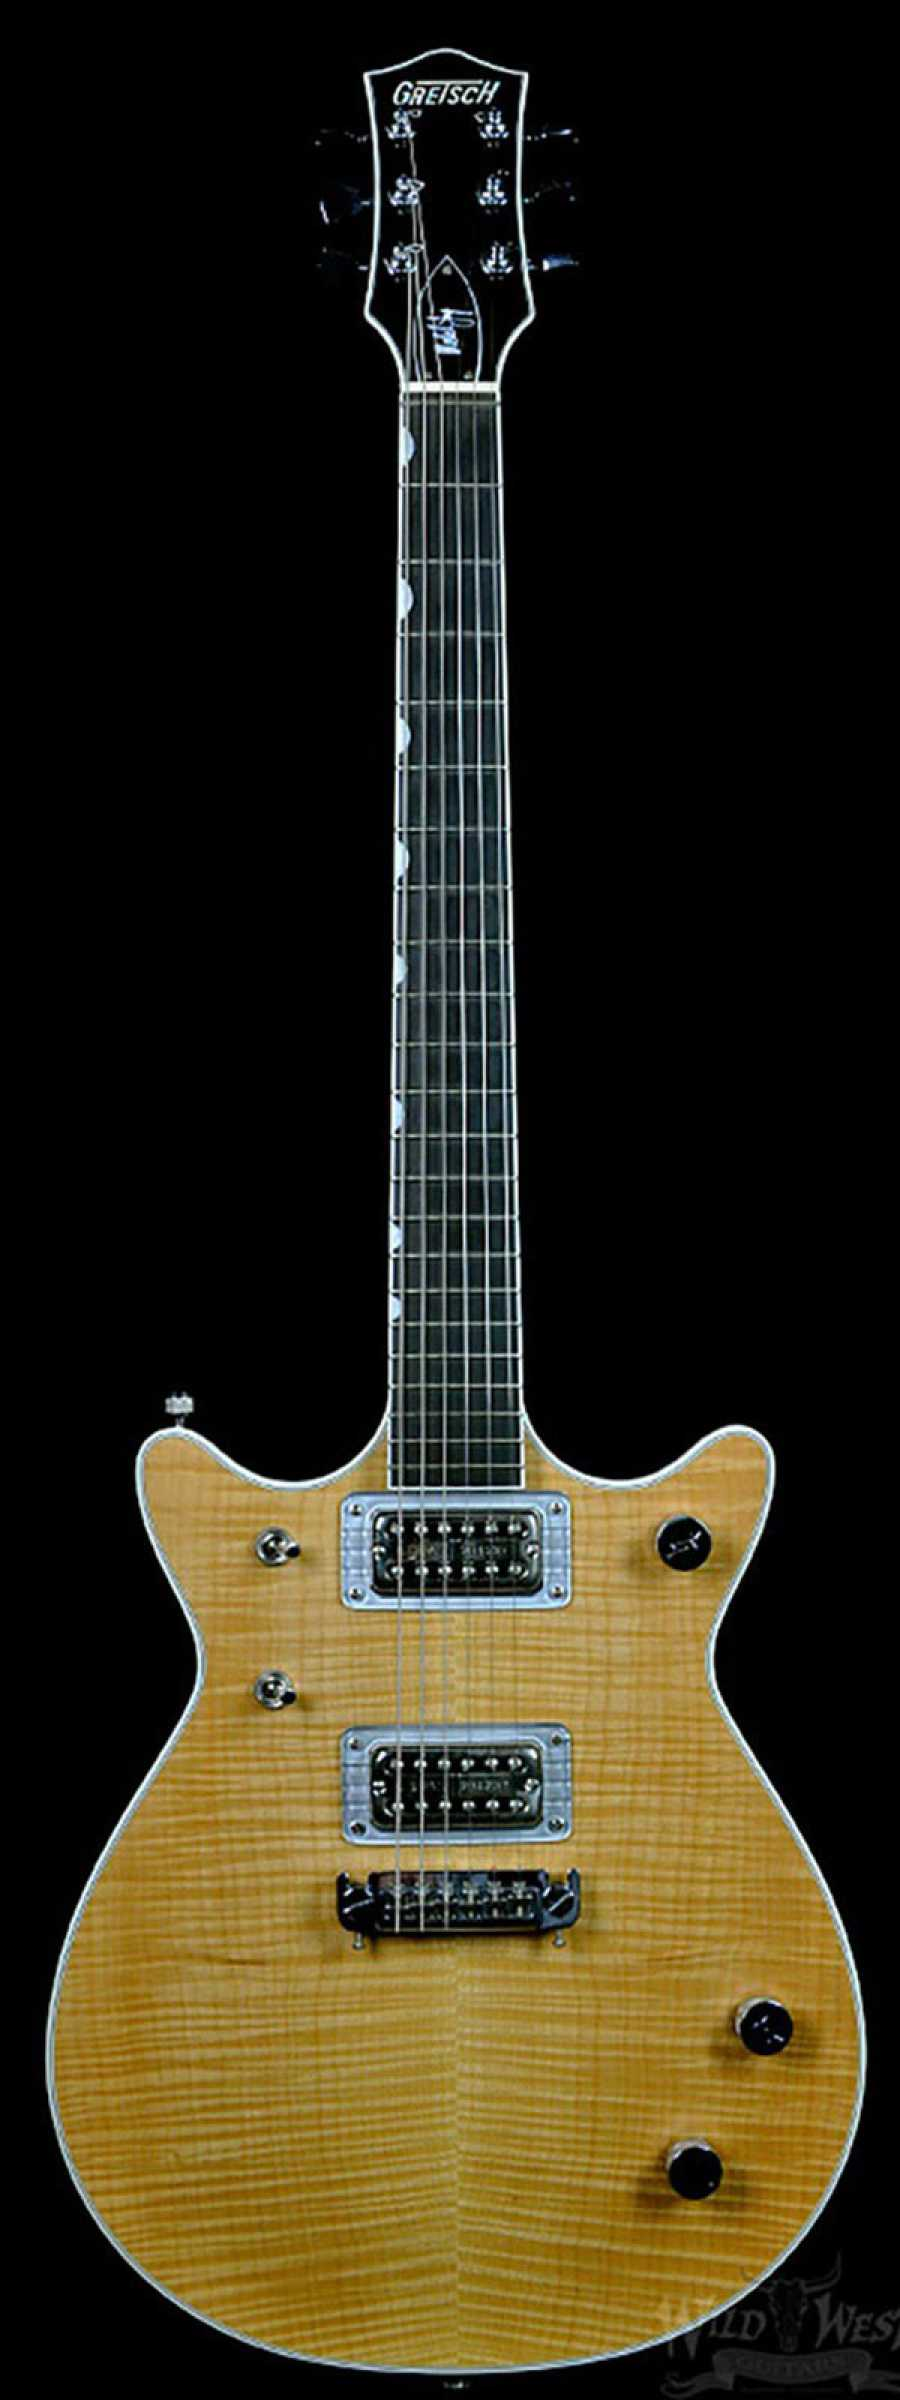 gretsch g6131my malcolm young ii signature natural flame maple preowned wild west guitars. Black Bedroom Furniture Sets. Home Design Ideas